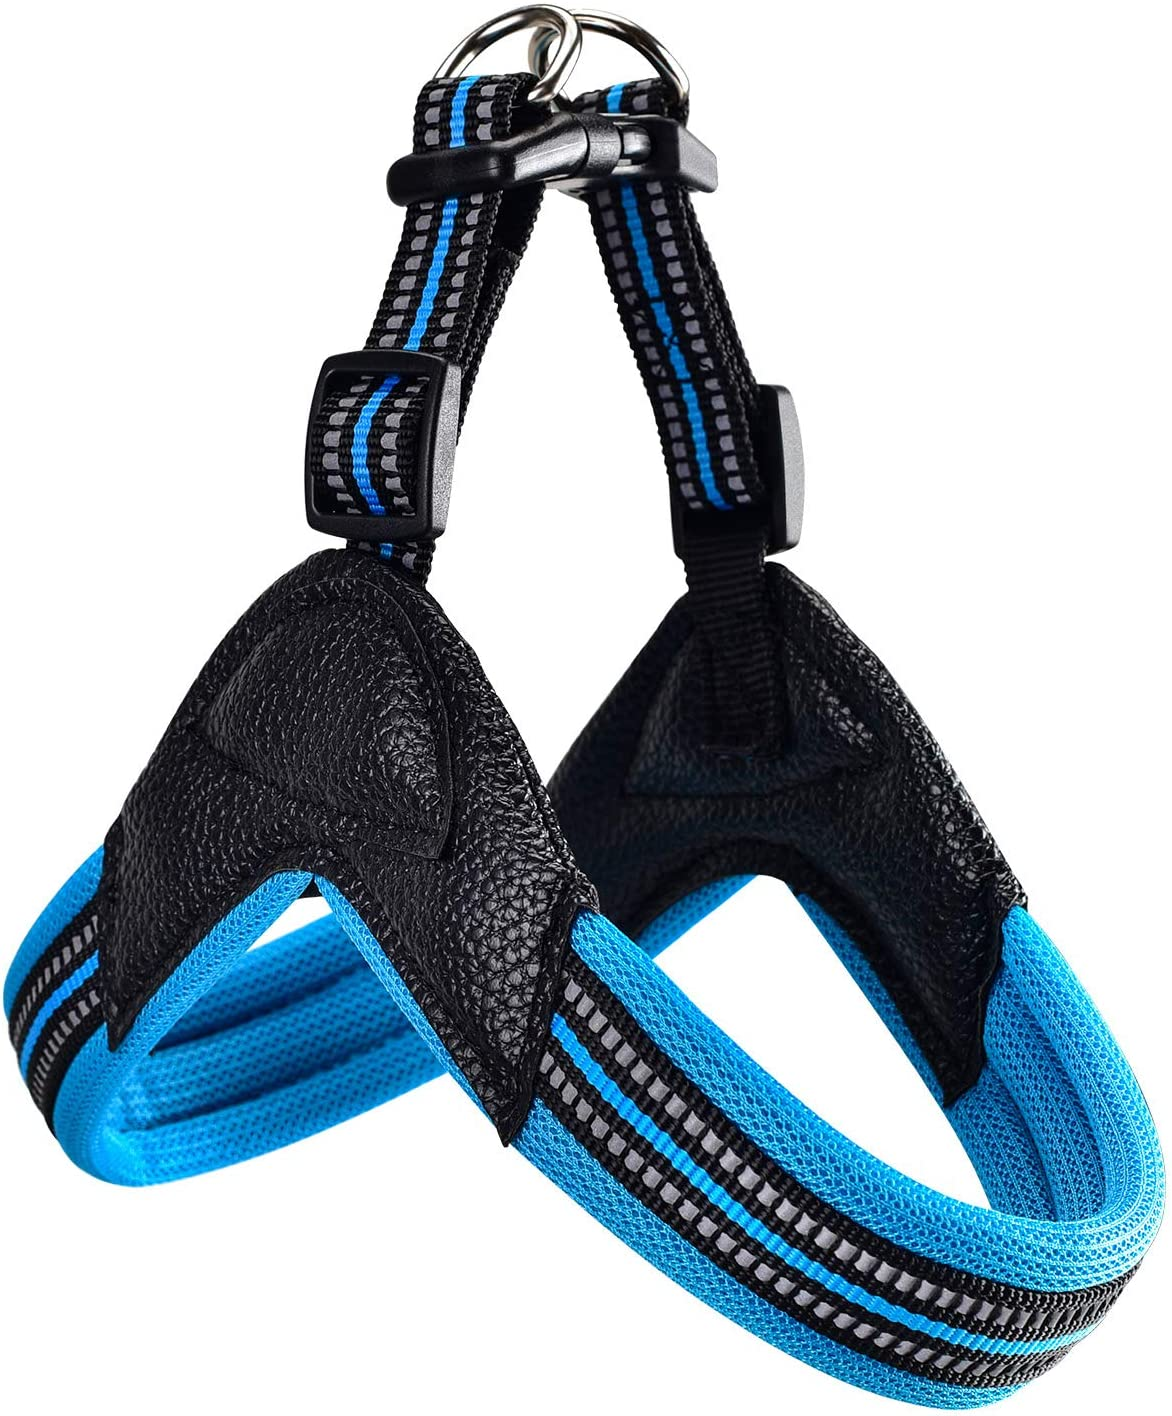 Dog Harness No Pull Ultra Soft Breathable Padded Pet Harness 2 Adjustable Botton, 3M Reflective Pet Harness for Dogs Easy Control for Small Medium Large Dogs